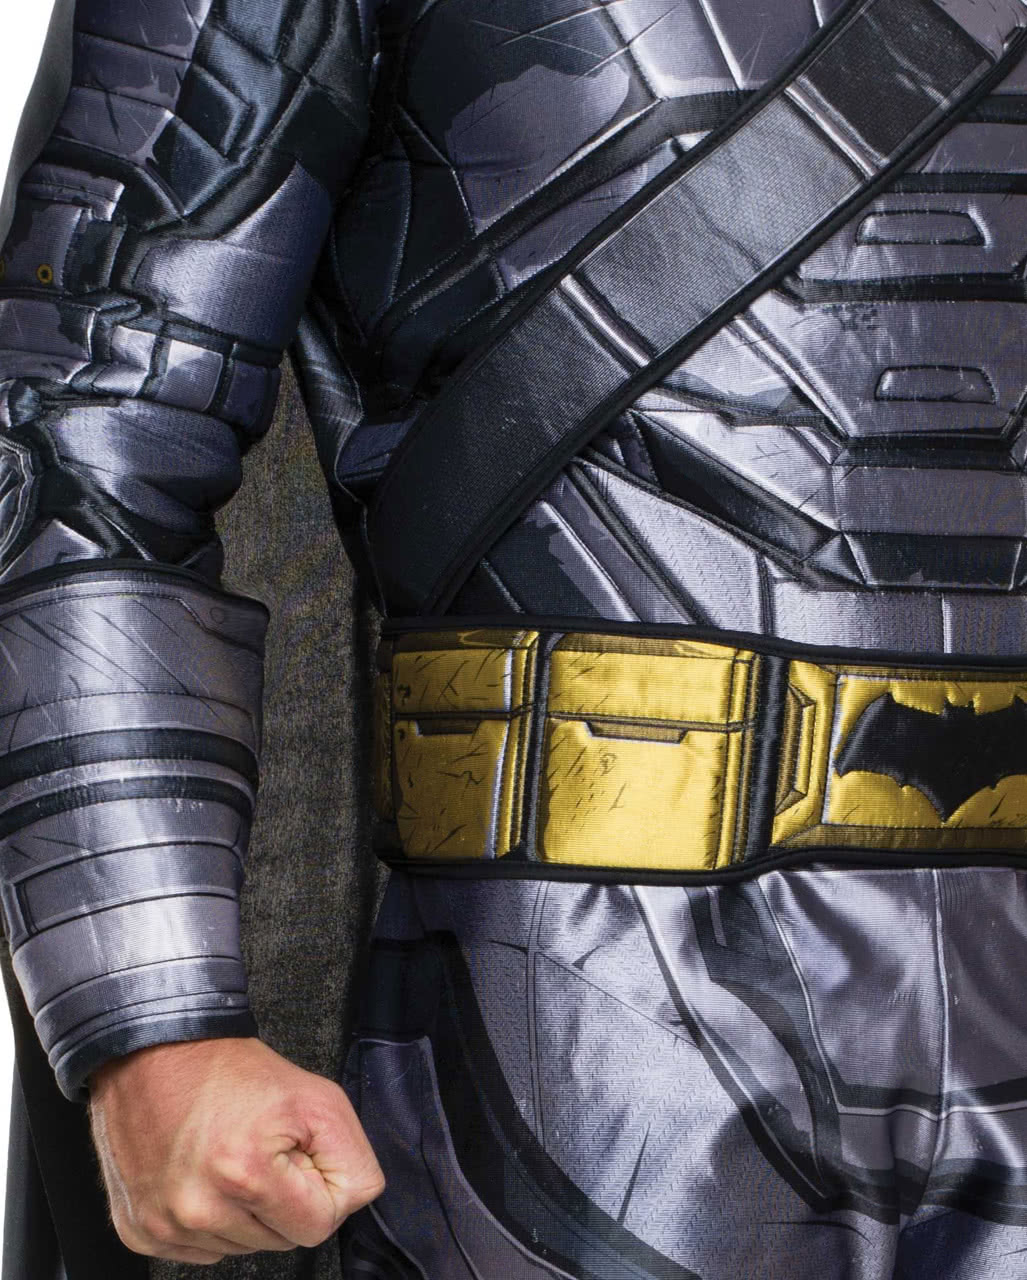 Batman Costume Armored With Mask From Dawn Of Justice Karneval Avengers